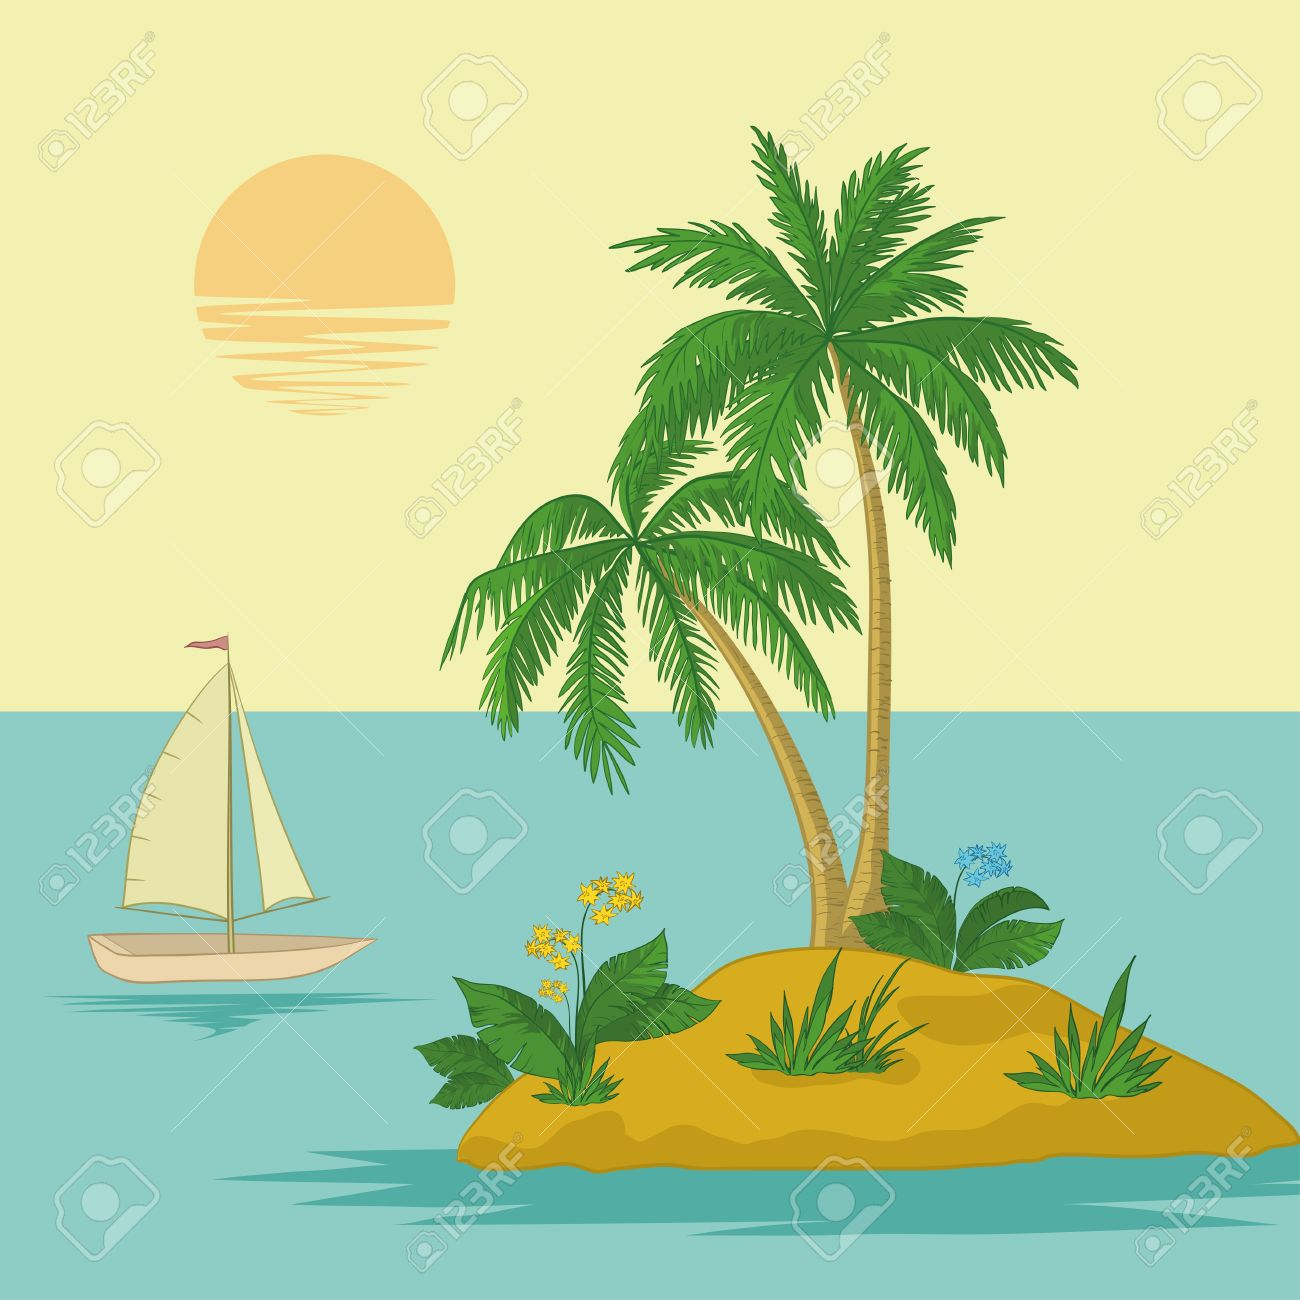 Ship, sun, tropical sea island with palm trees and flowers Stock Vector - 14829729